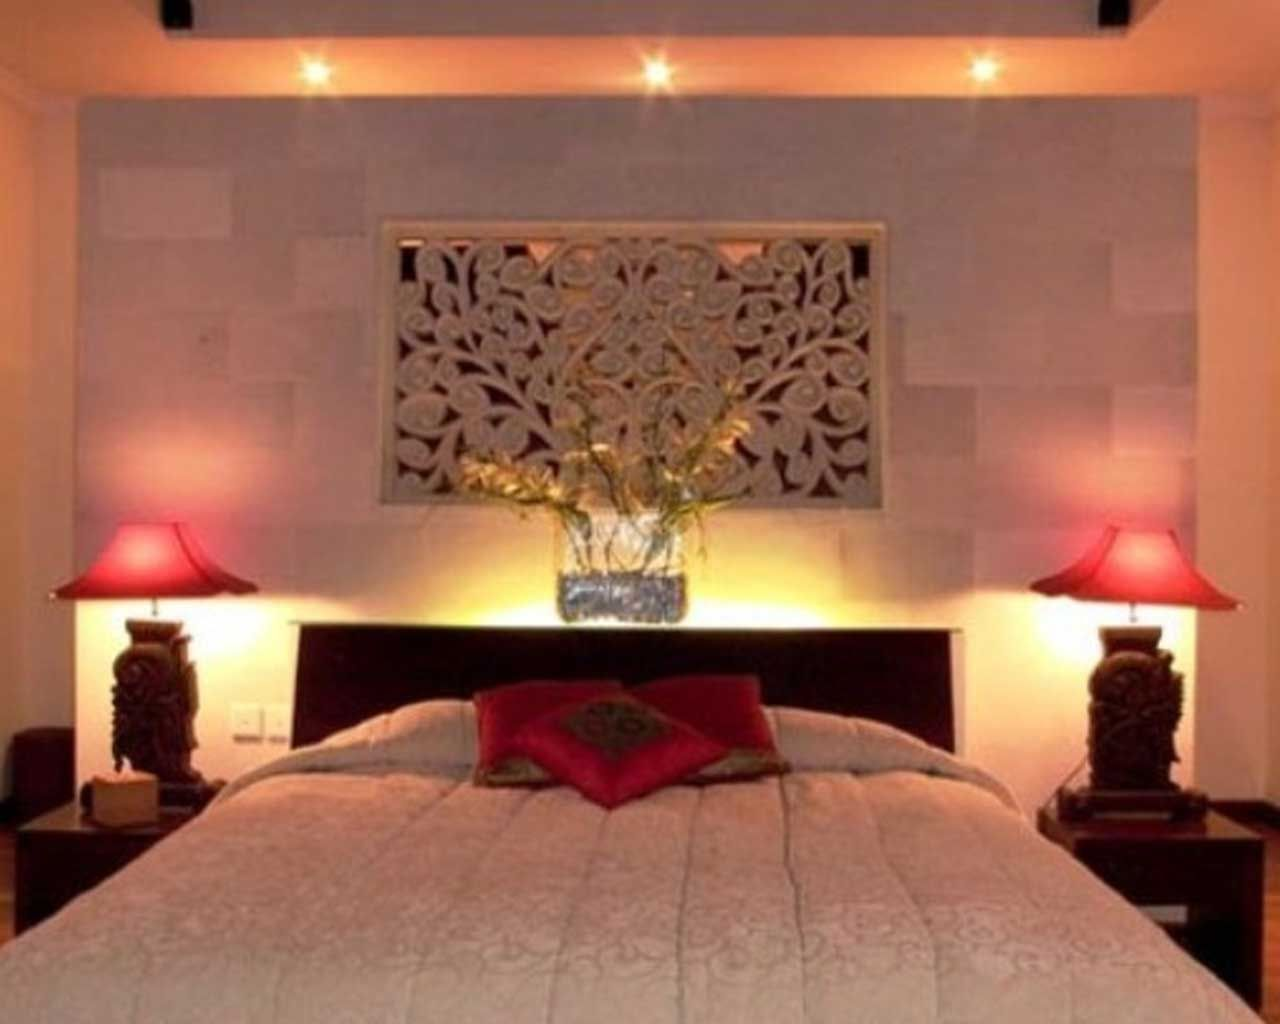 20 best romantic bedroom decorating images on pinterest | romantic